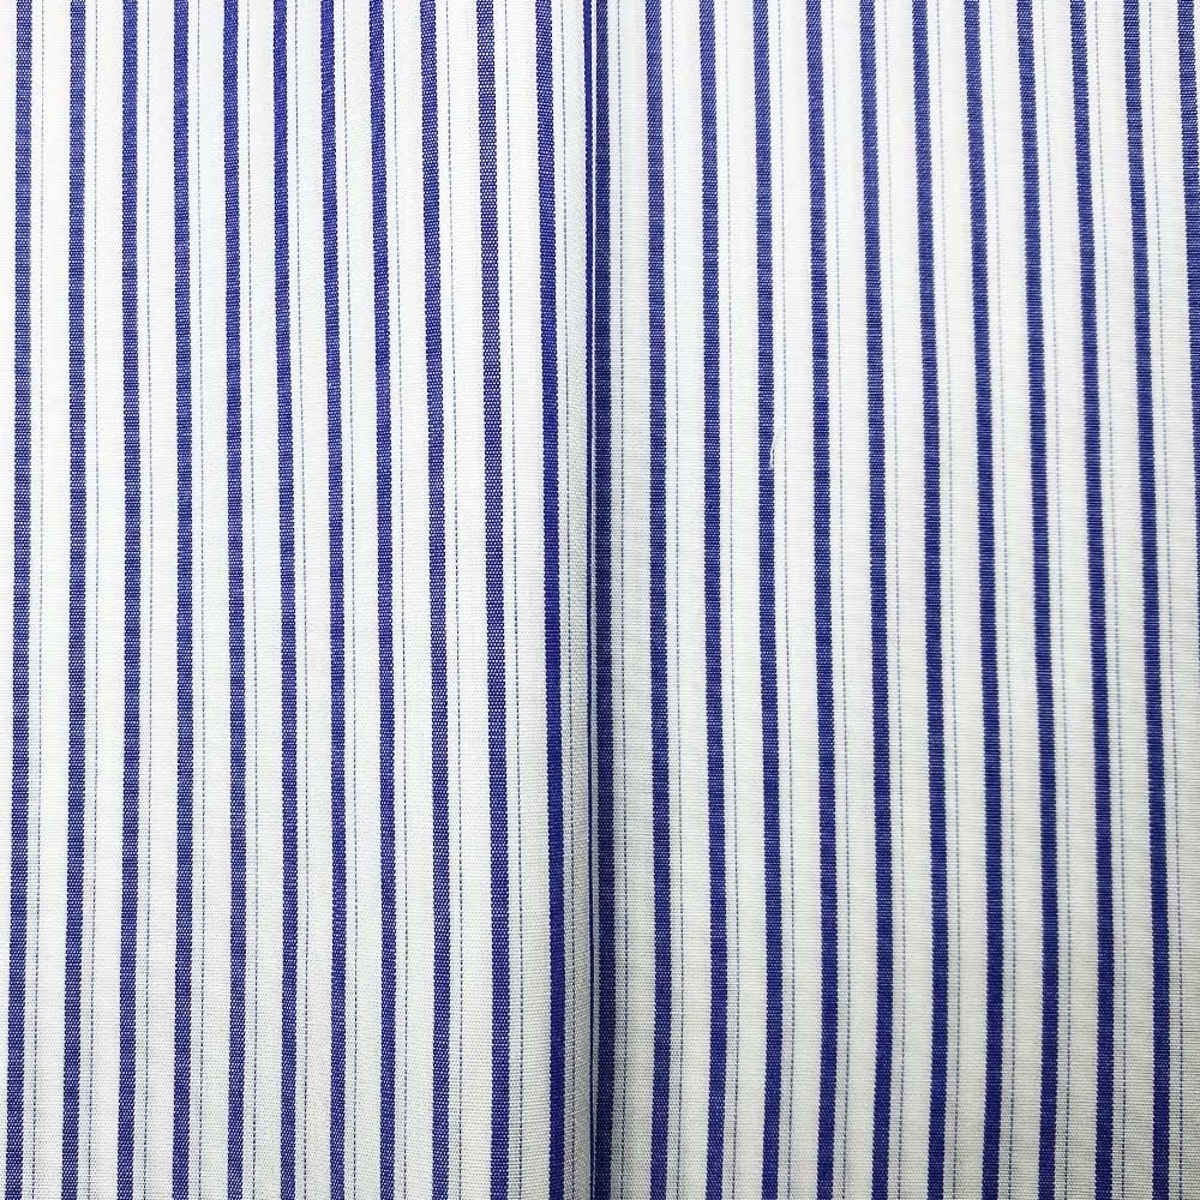 InStitchu Shirt Fabric 131